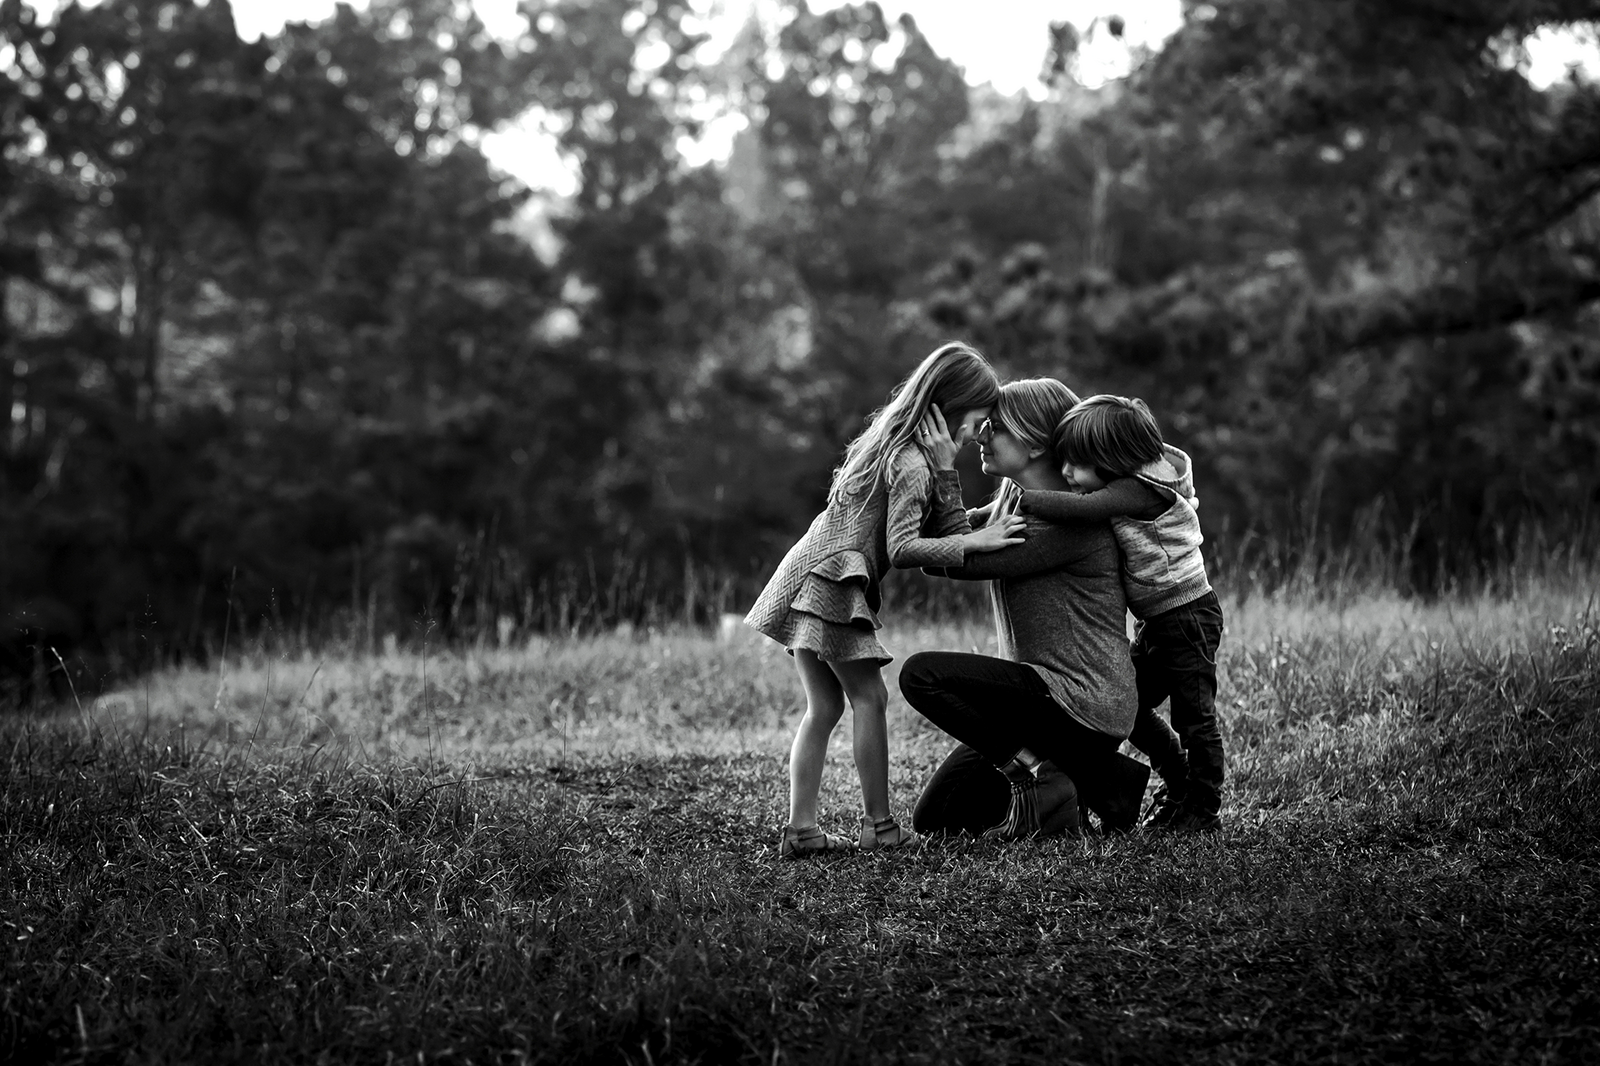 ker-fox-photography,-neely,-mother-and-children-in-field,_30159778